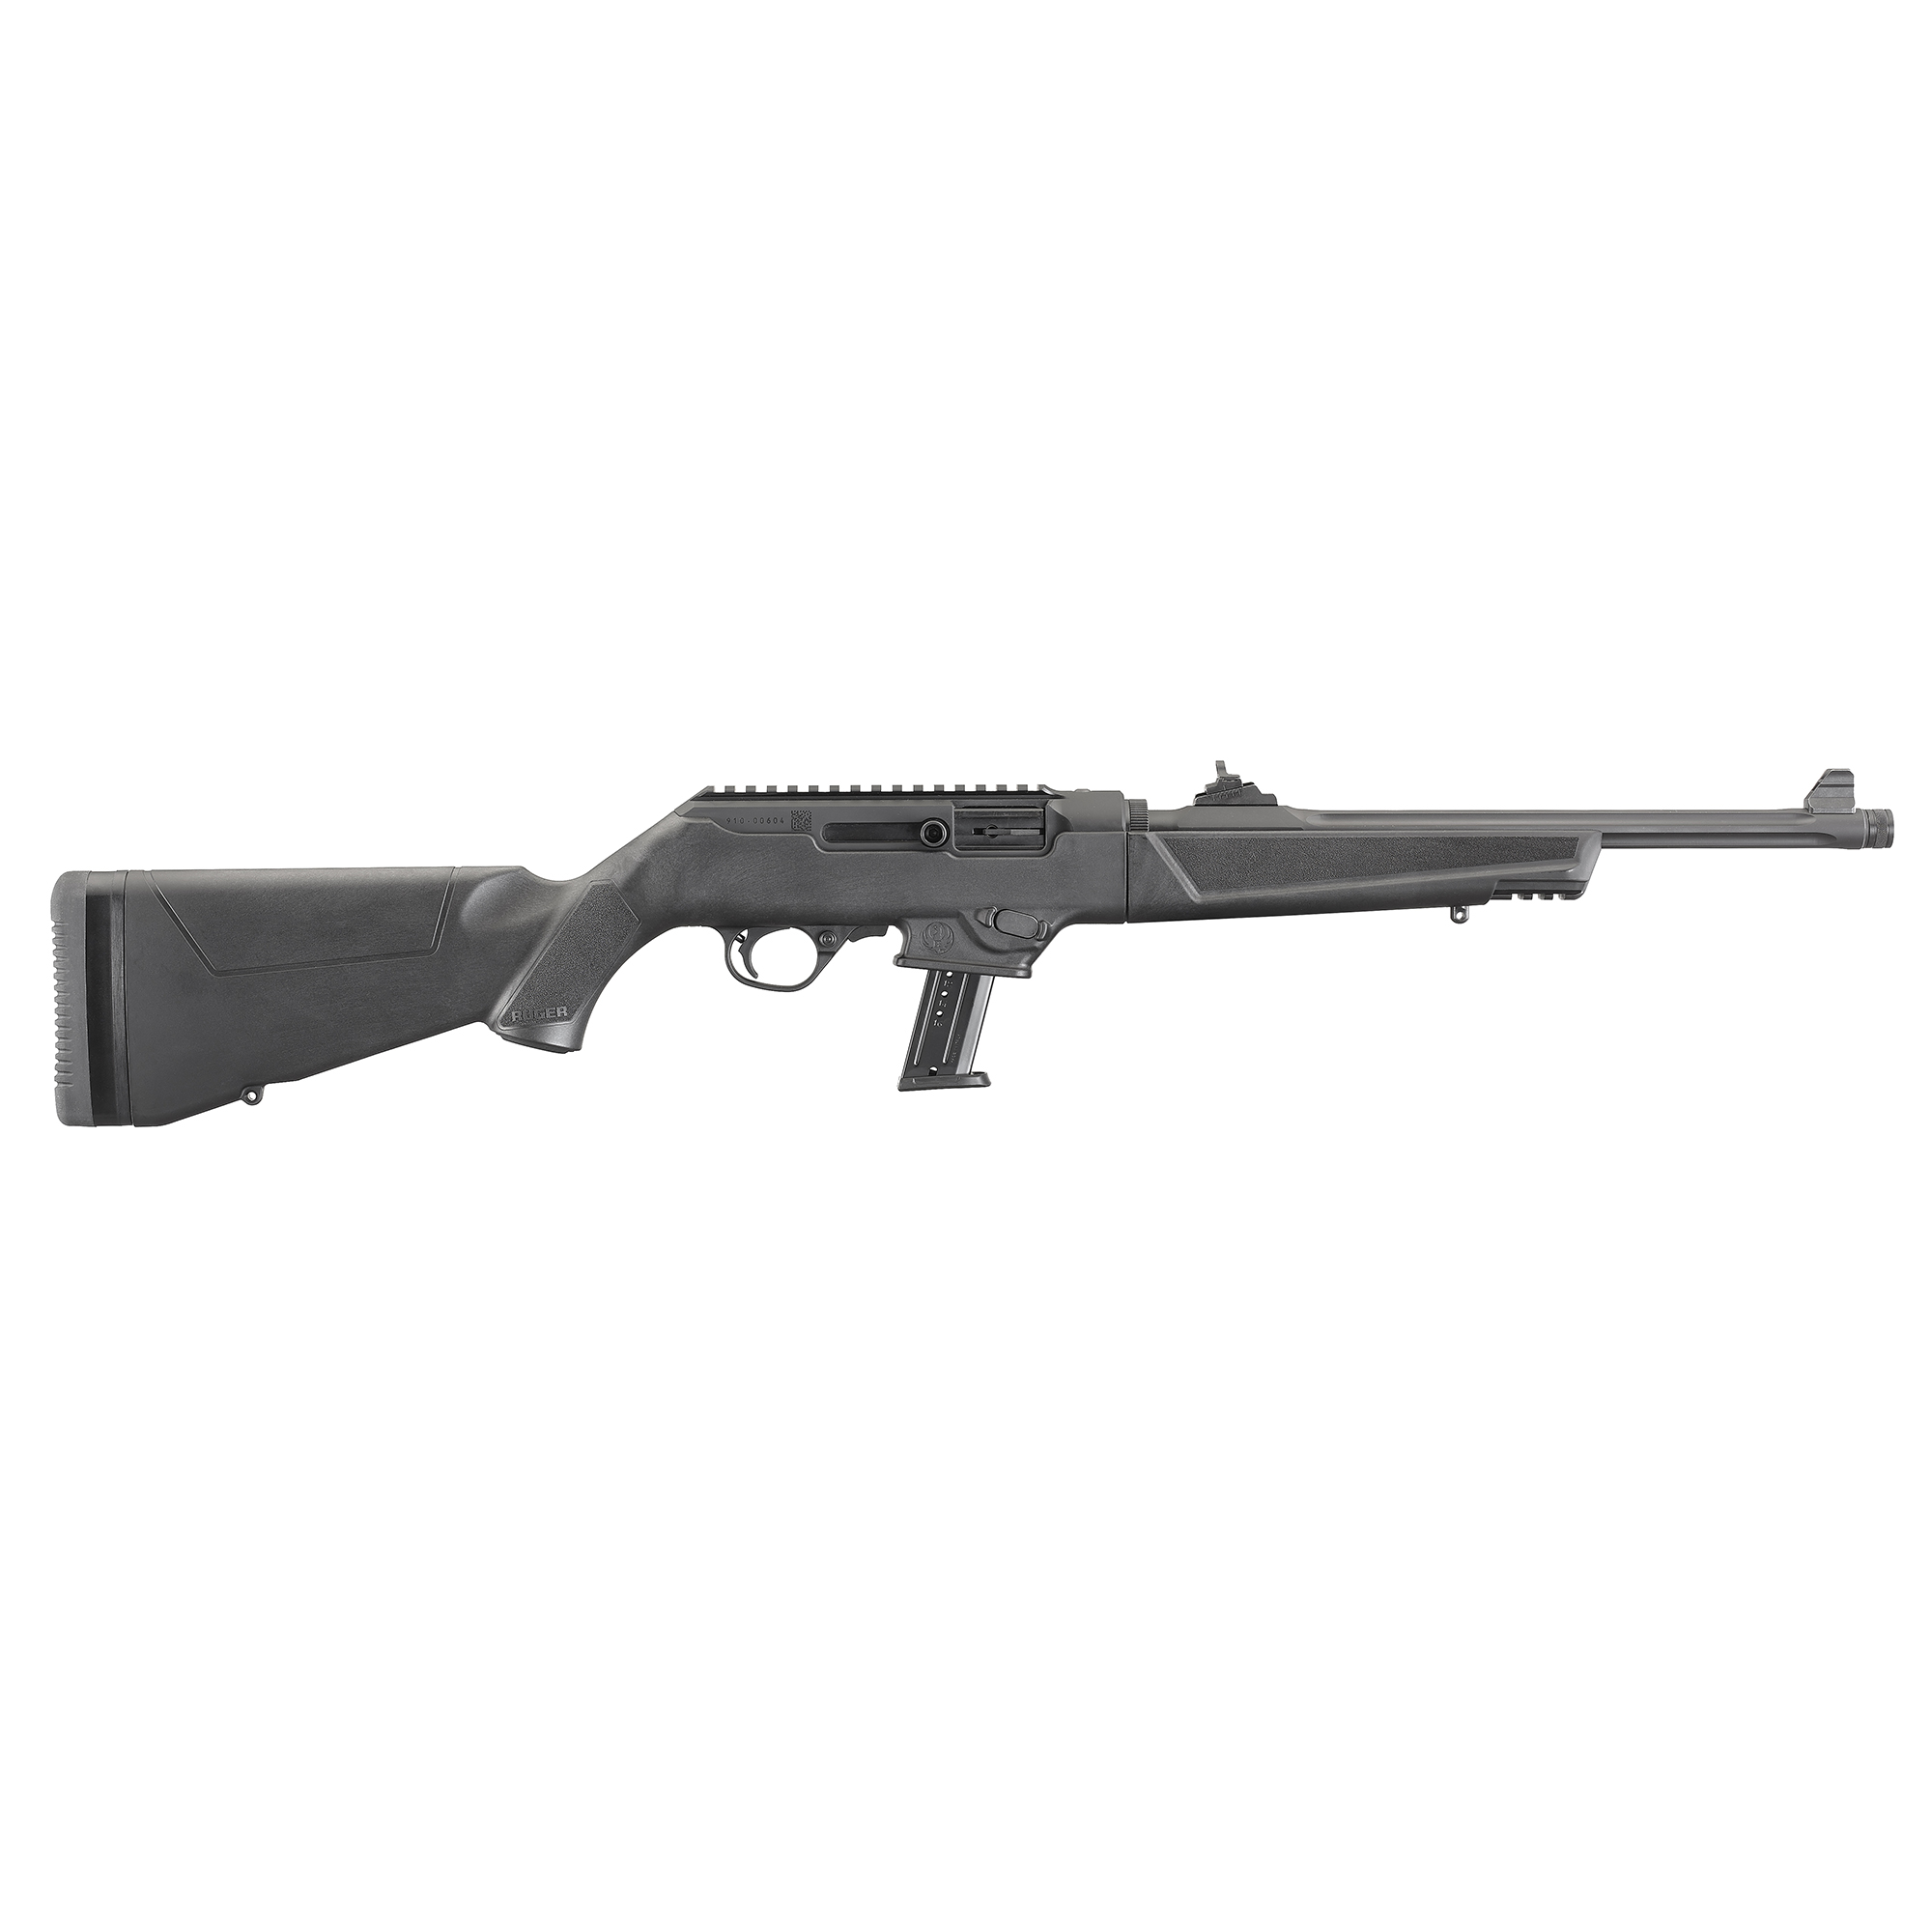 Ruger PC Carbine Centerfire Rifle, 17 Rd.